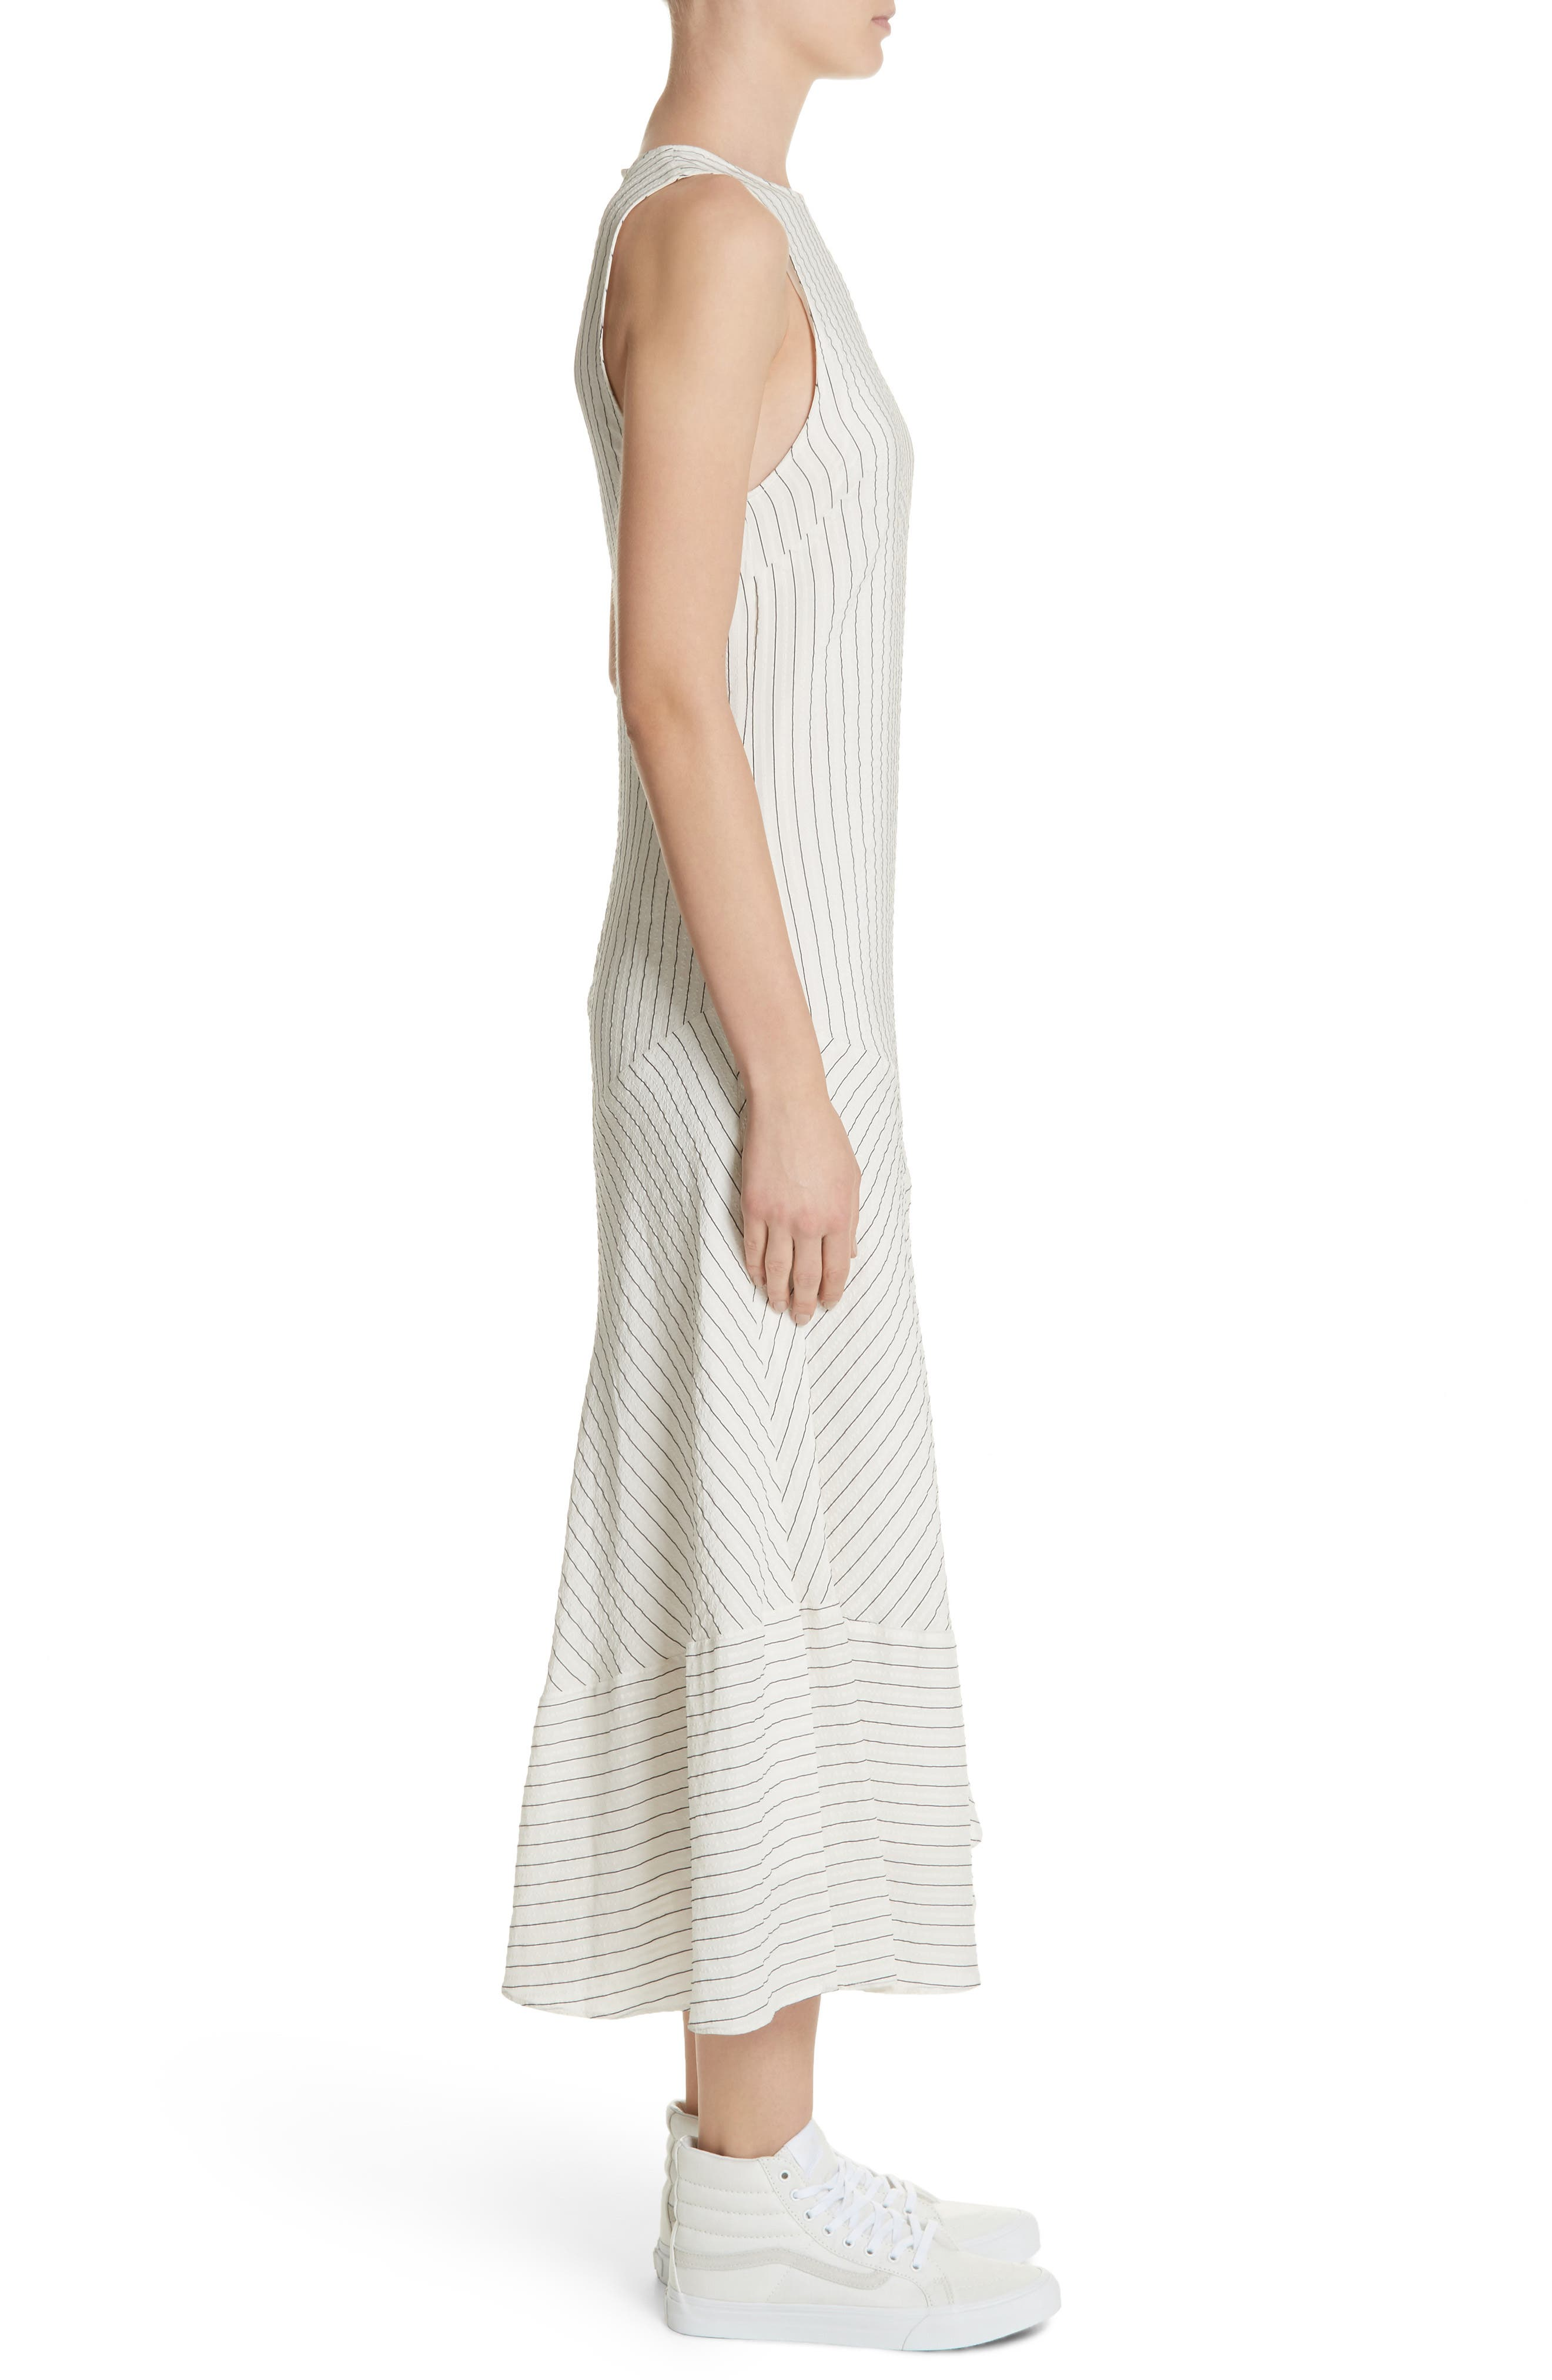 Wilkie Seersucker Striped Sheath Dress,                             Alternate thumbnail 3, color,                             900